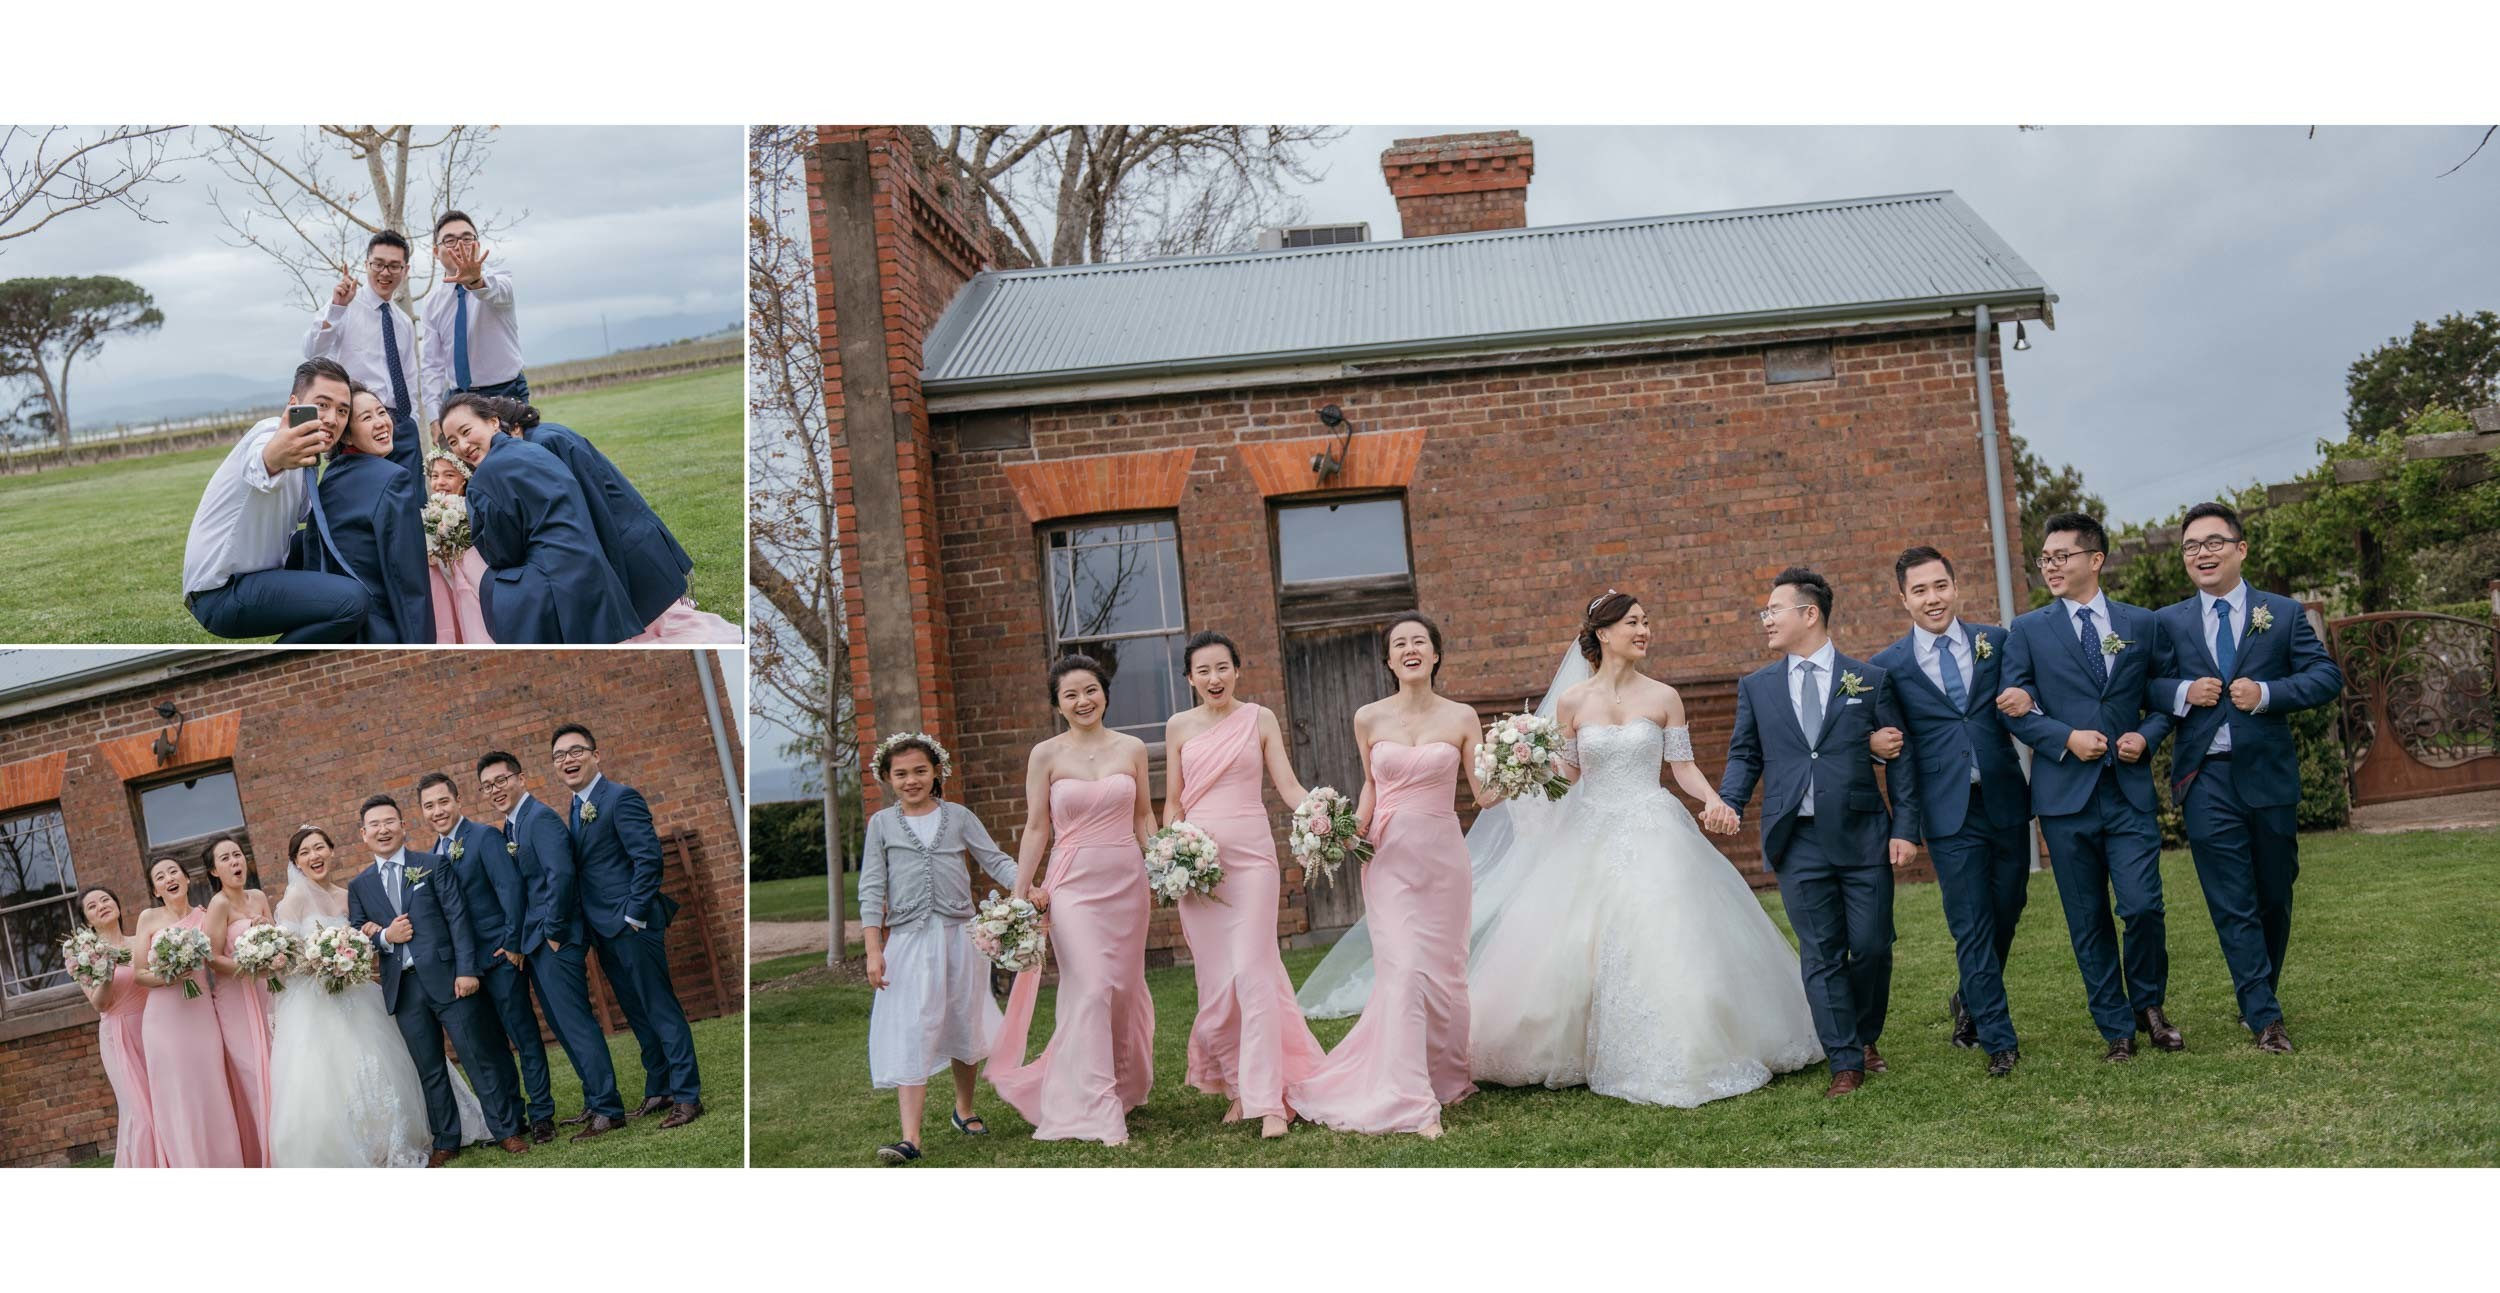 Stones of the yarra valley 墨尔本婚礼跟拍 Blessed Vision Melbourne Prewedding Photography Wedding photo WPPI 墨尔本婚纱摄影 婚纱照 婚礼跟拍-01